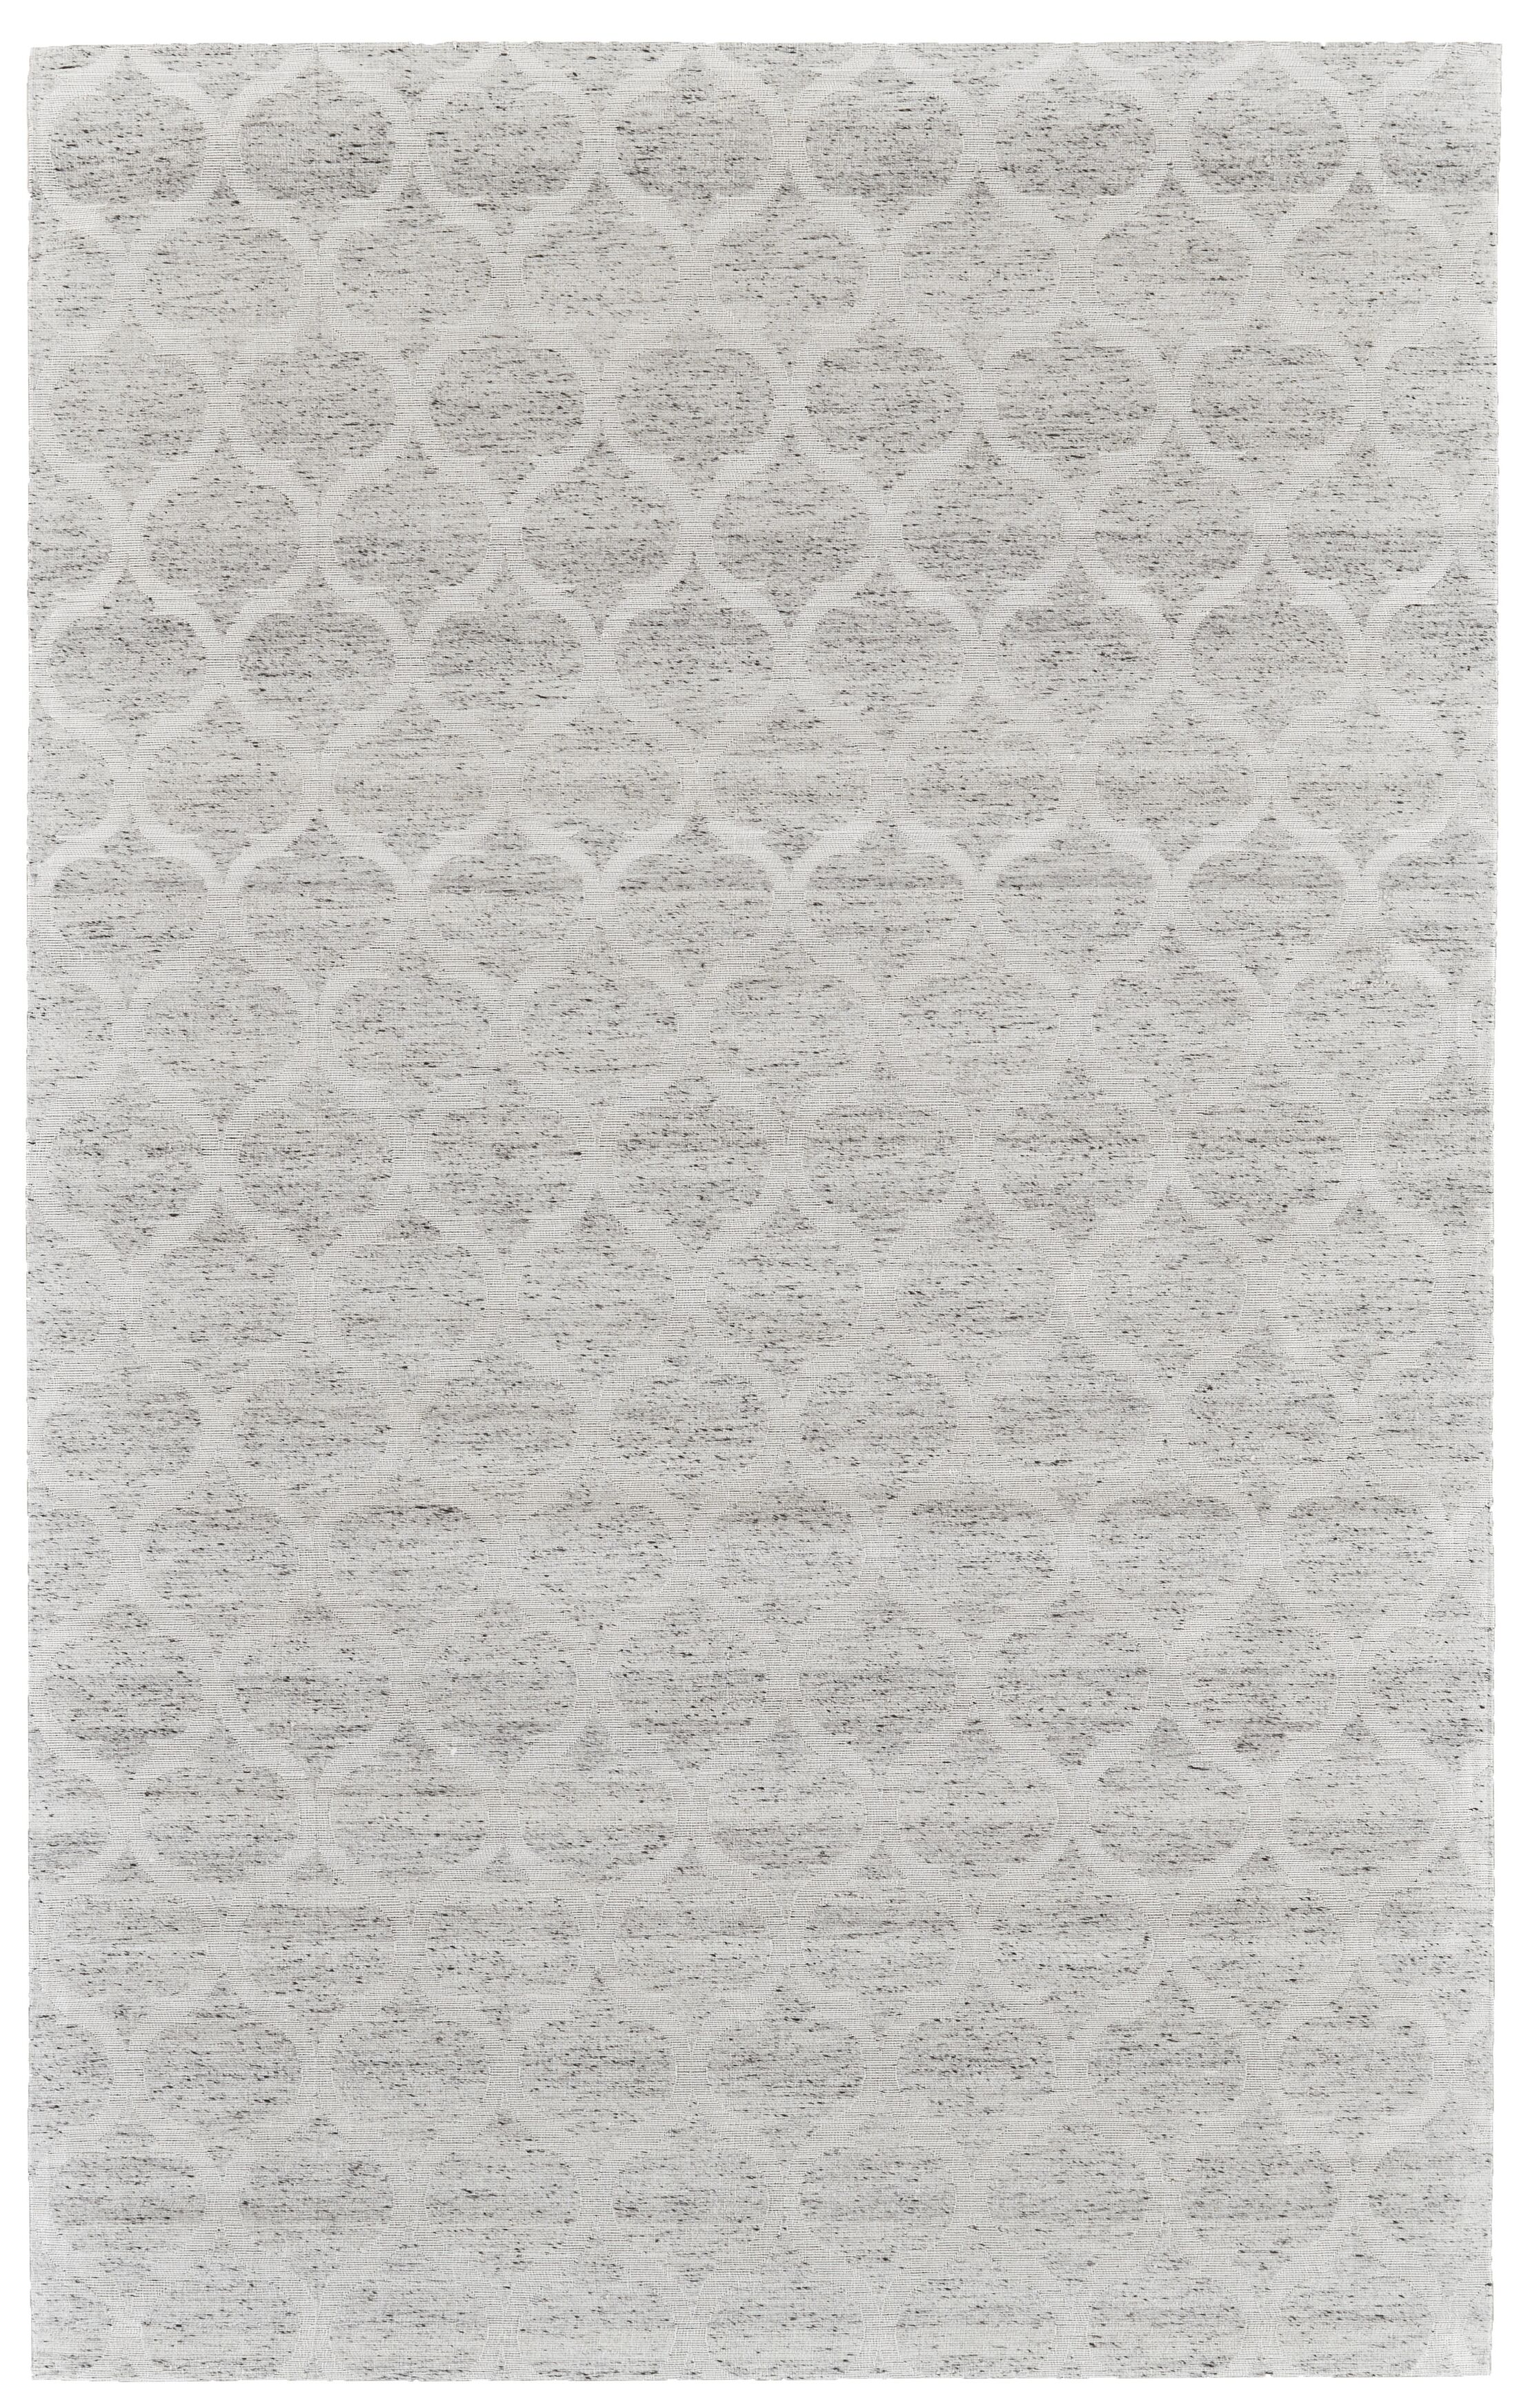 Brainard Hand-Woven Gray/White Area Rug Rug Size: Rectangle 4' x 6'